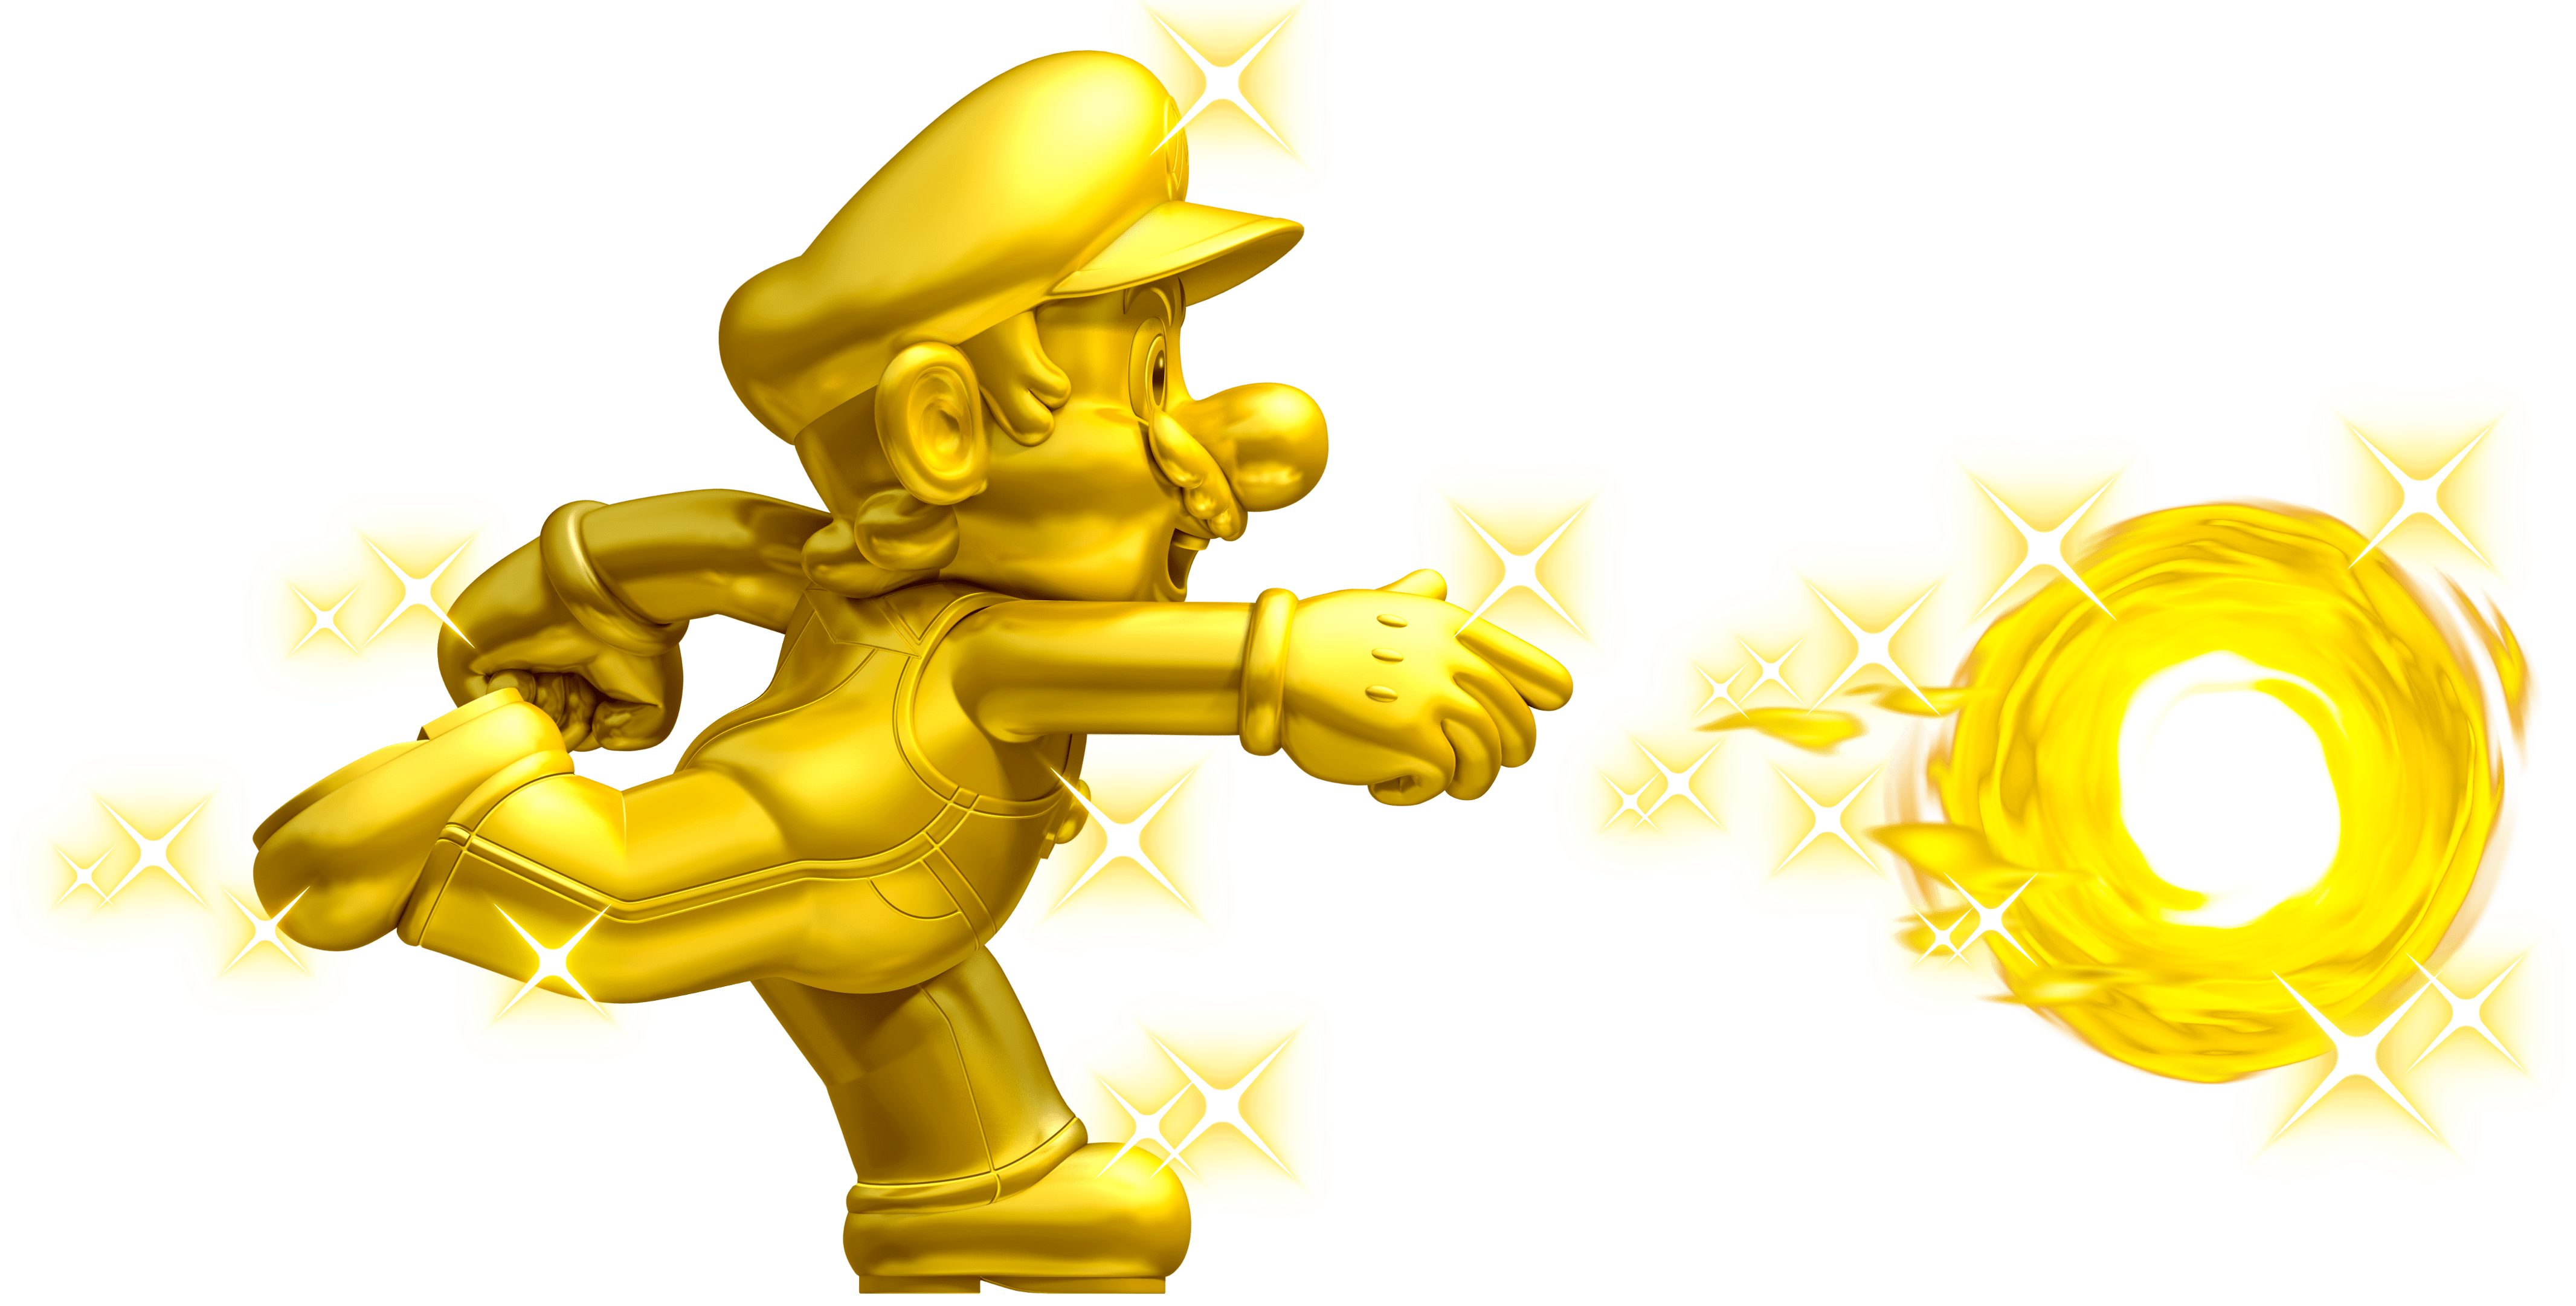 Mario star clipart no background image transparent stock Mario Gold Fire transparent PNG - StickPNG image transparent stock